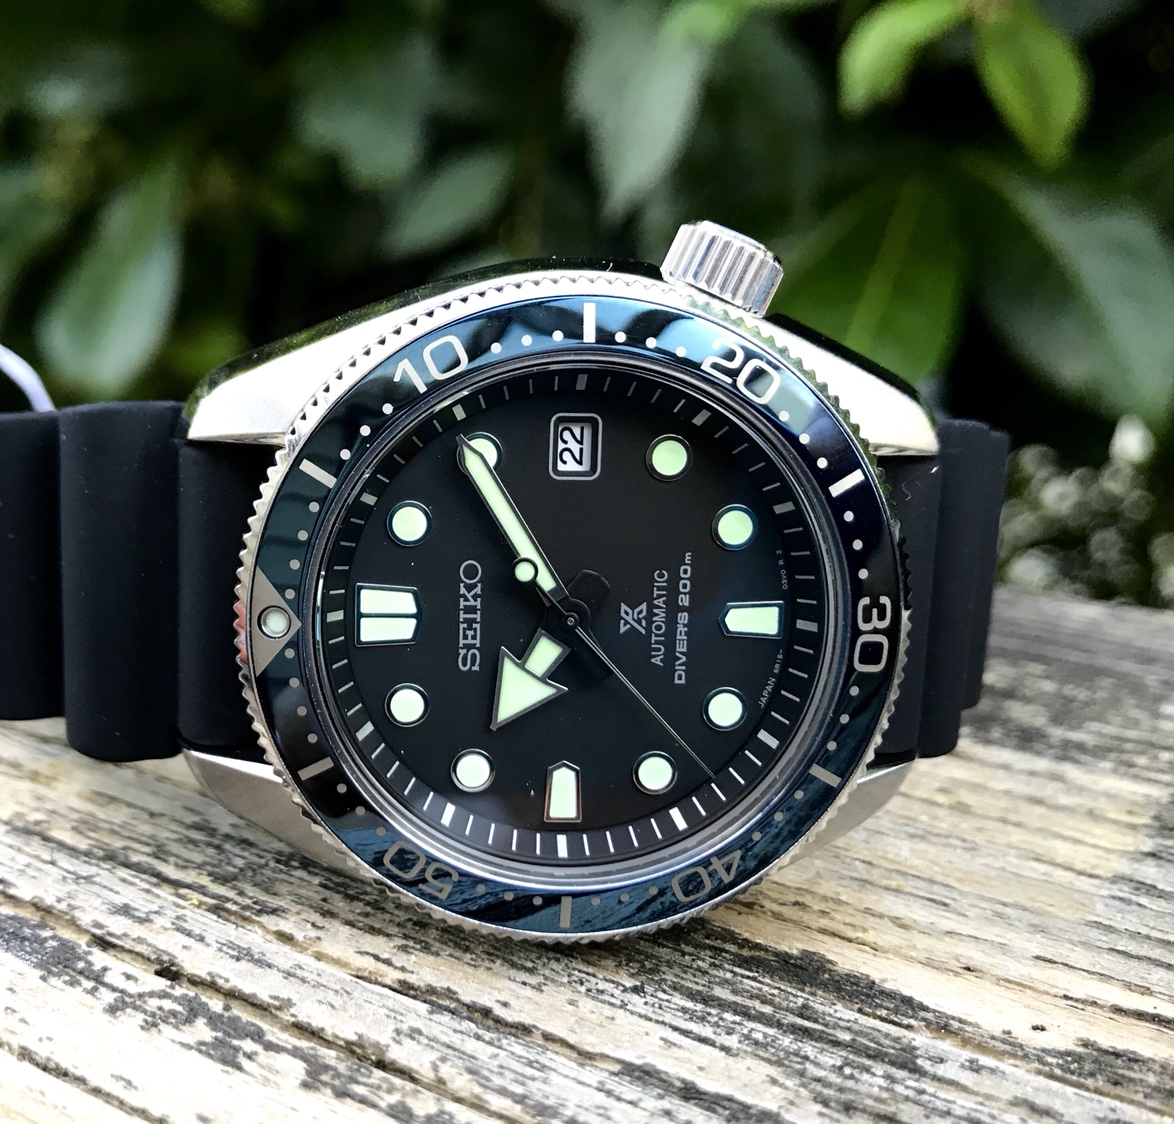 🌊Seiko SPB079 (SBDC063) Review 🌊:Deep Dive on a Tribute to